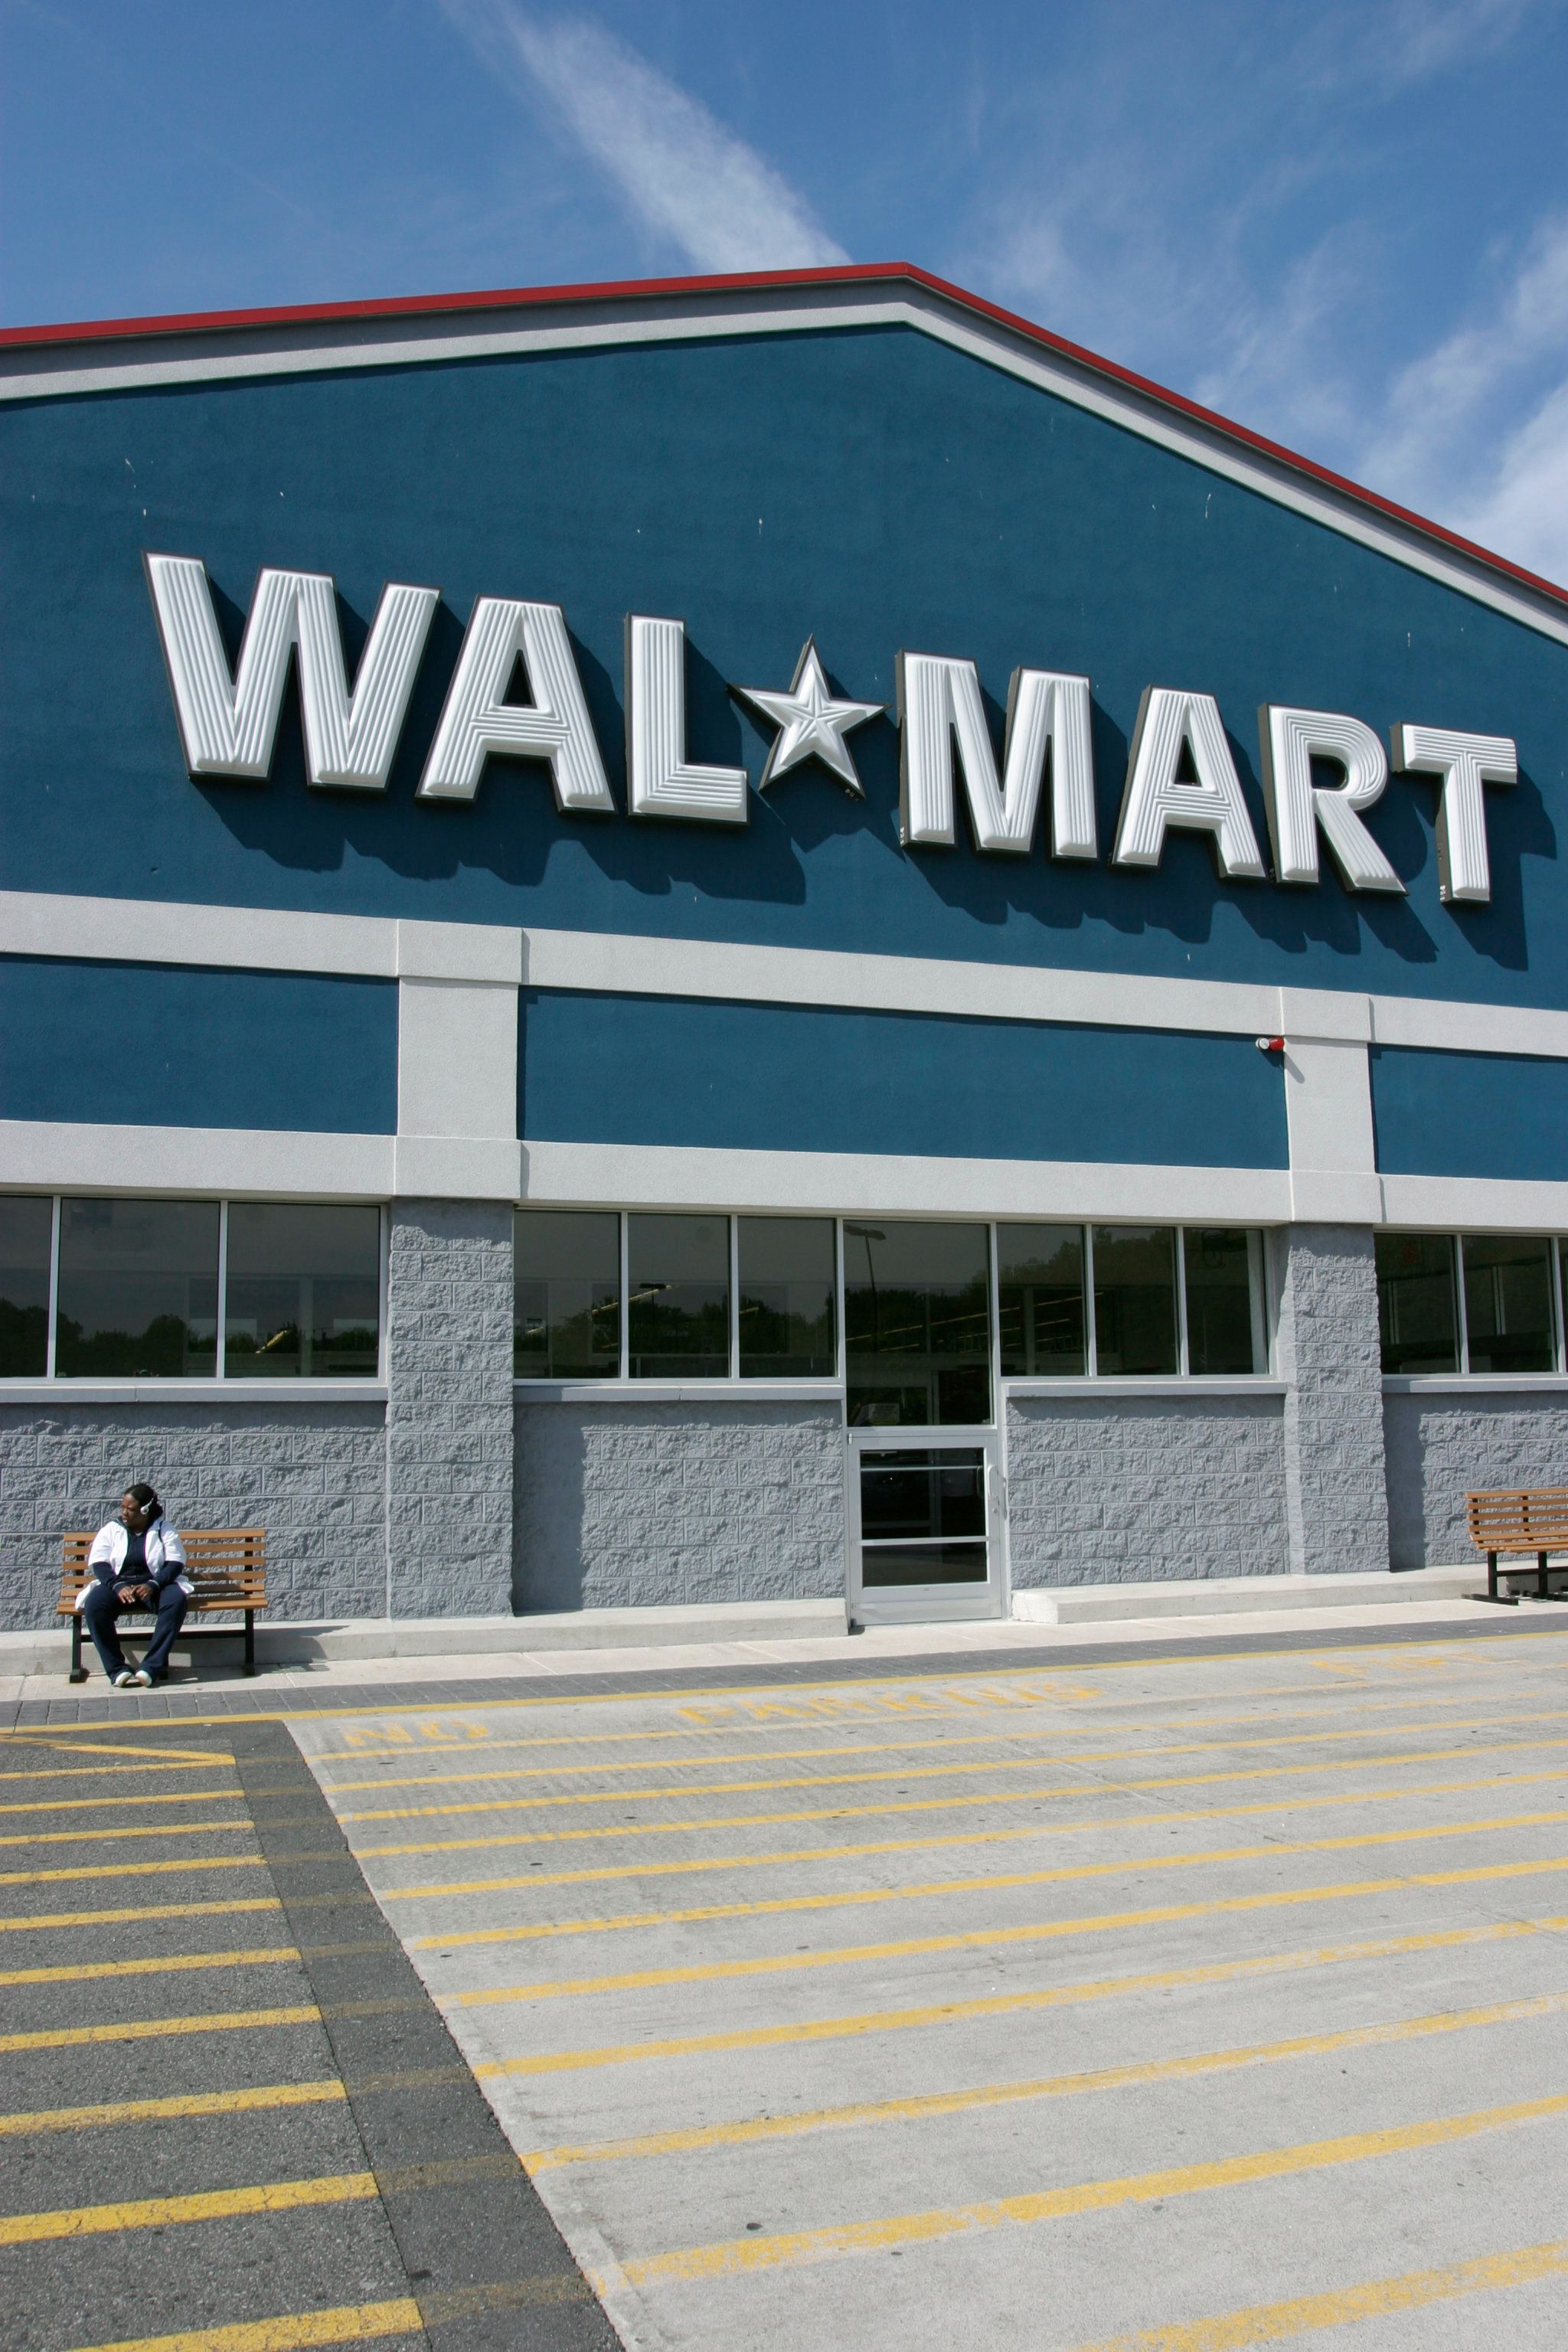 Wal-Mart Storefront in Airmont, New York